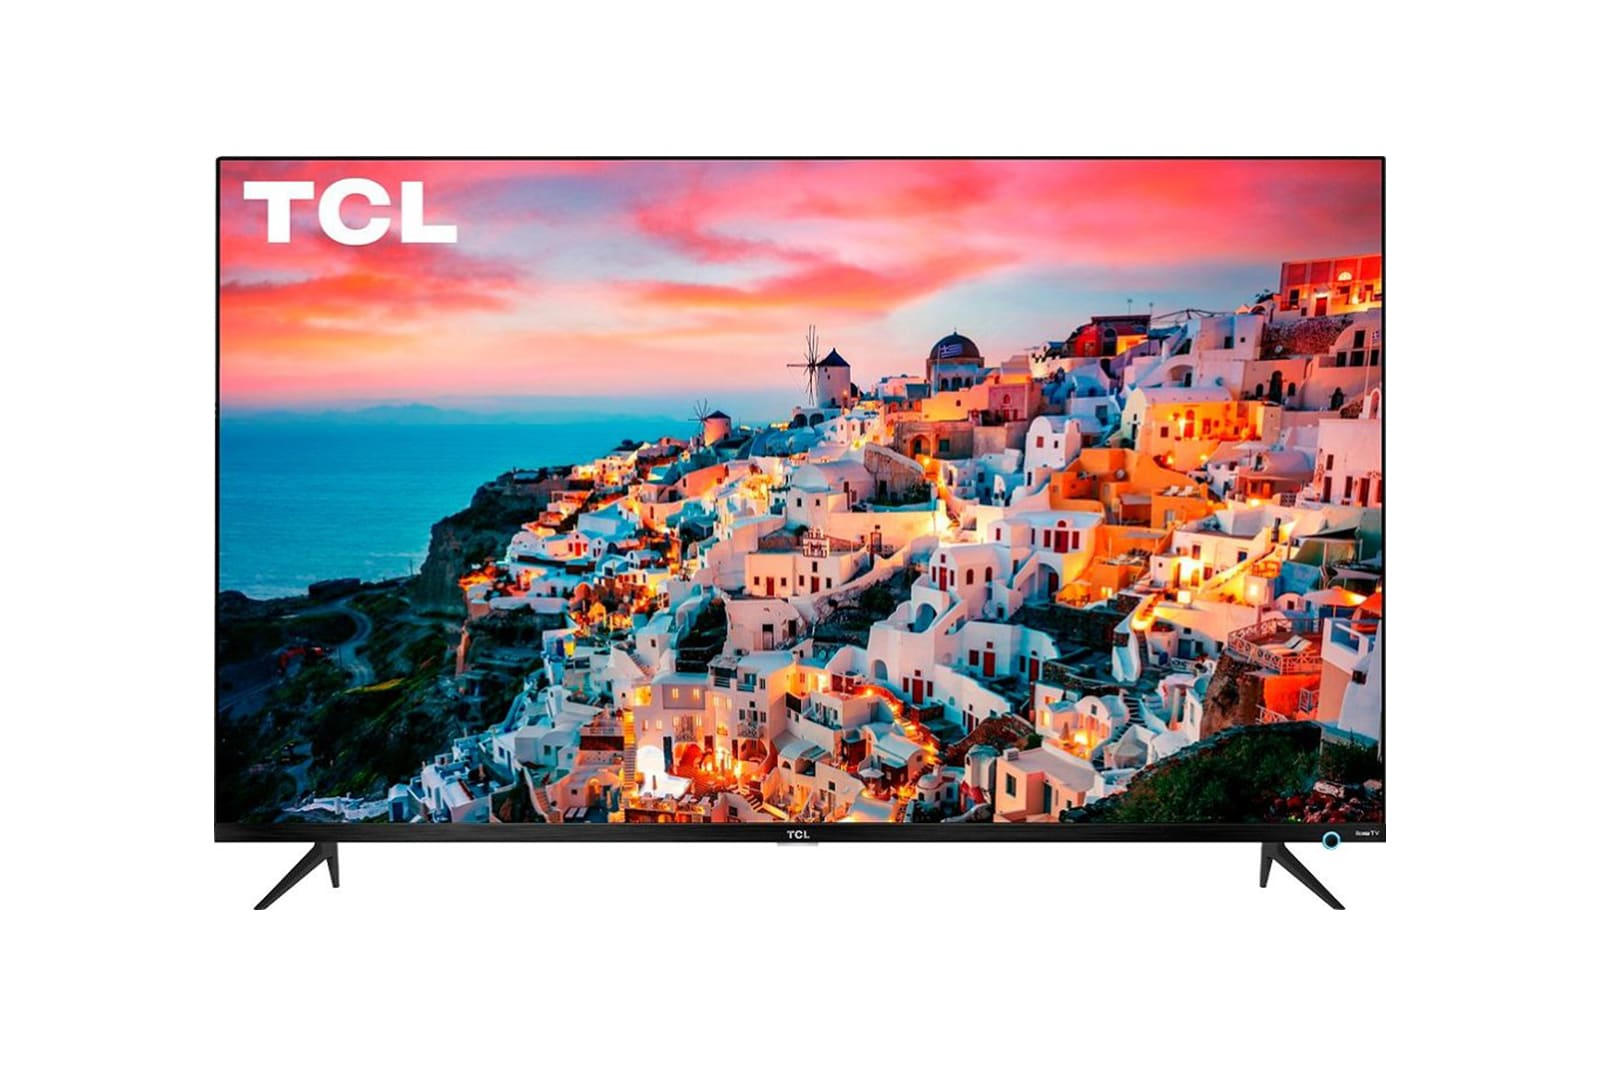 TCL 5 Series 55S525